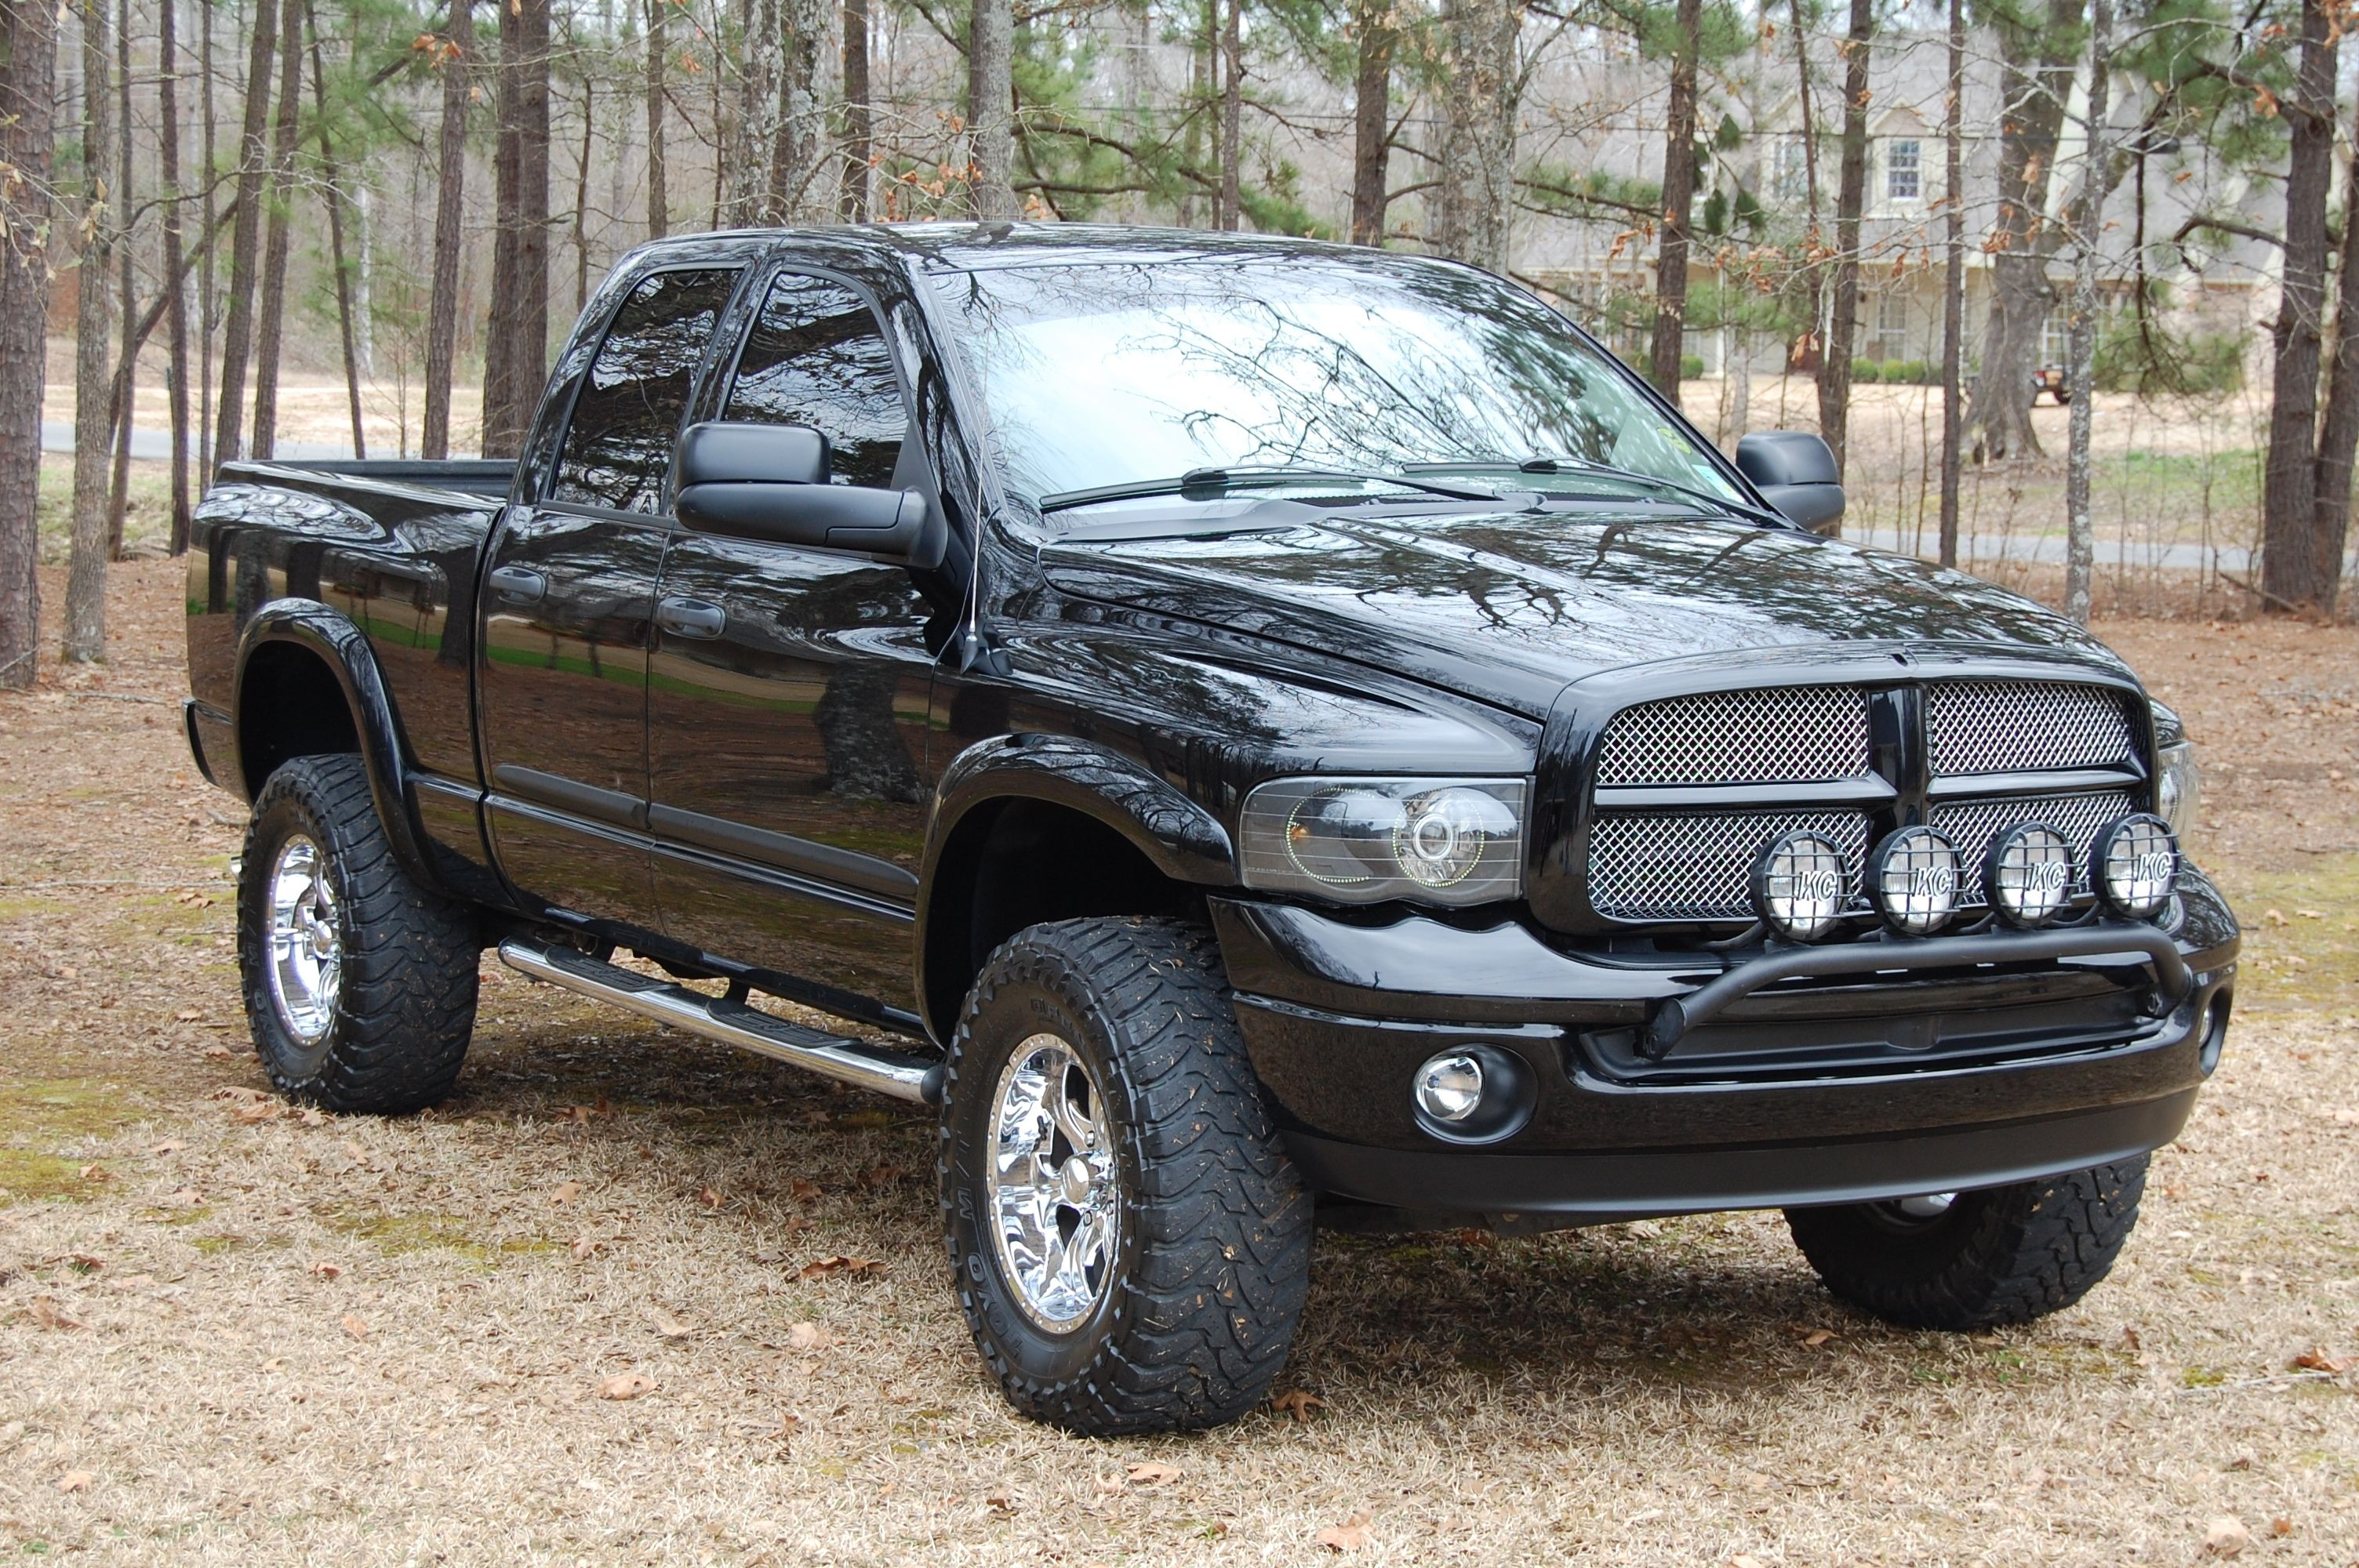 view another bmgamble 2005 dodge ram 1500 quad cab post. Black Bedroom Furniture Sets. Home Design Ideas